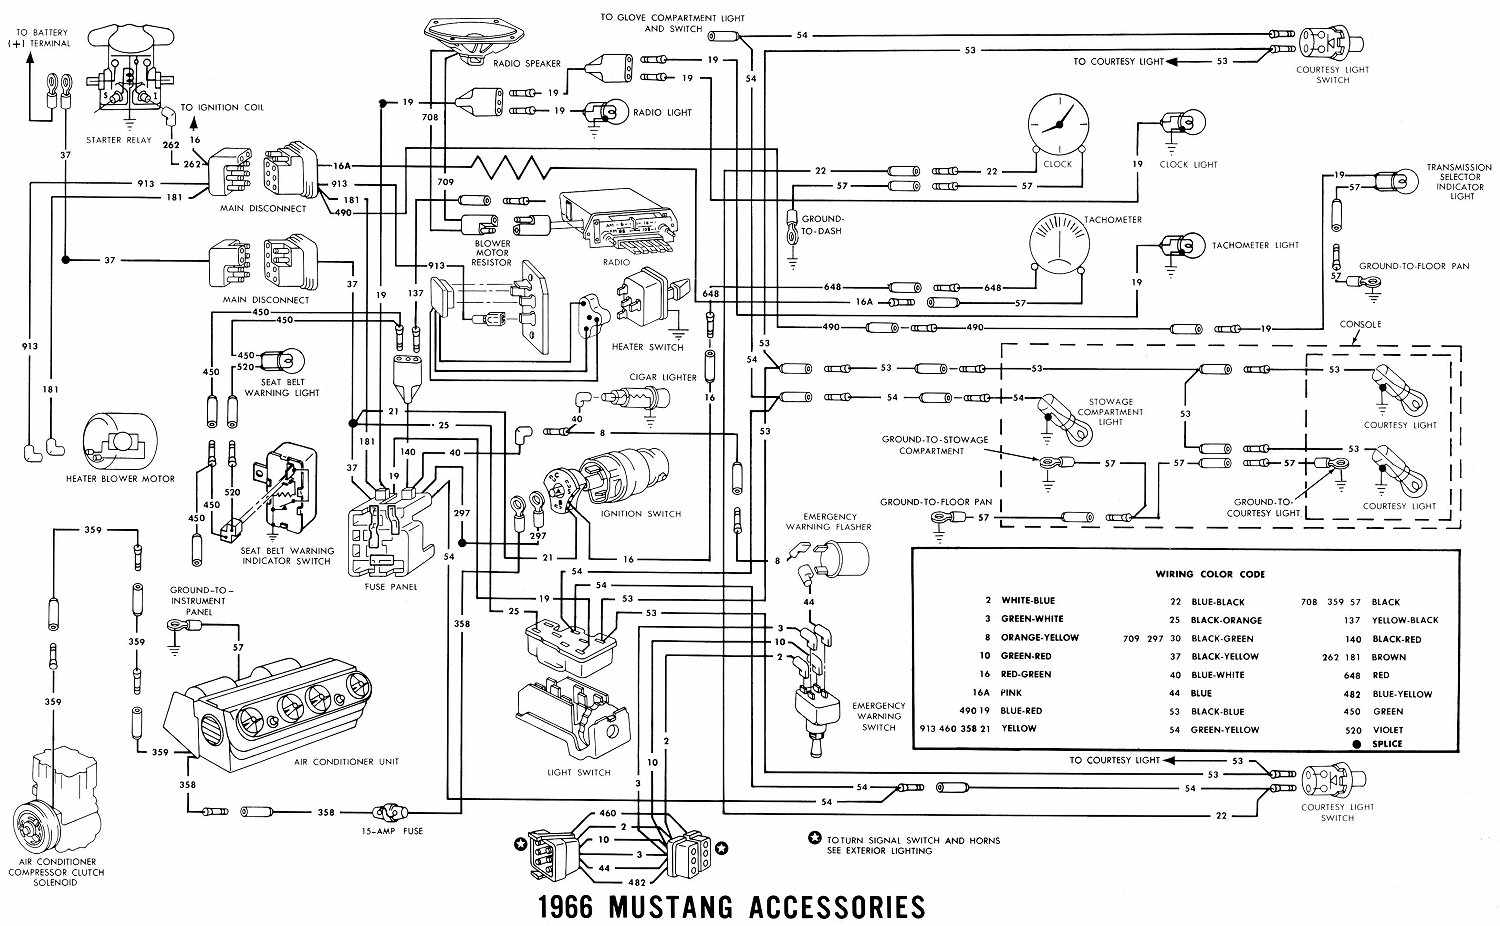 Ford Mustang Accessories Electrical Wiring Diagrams